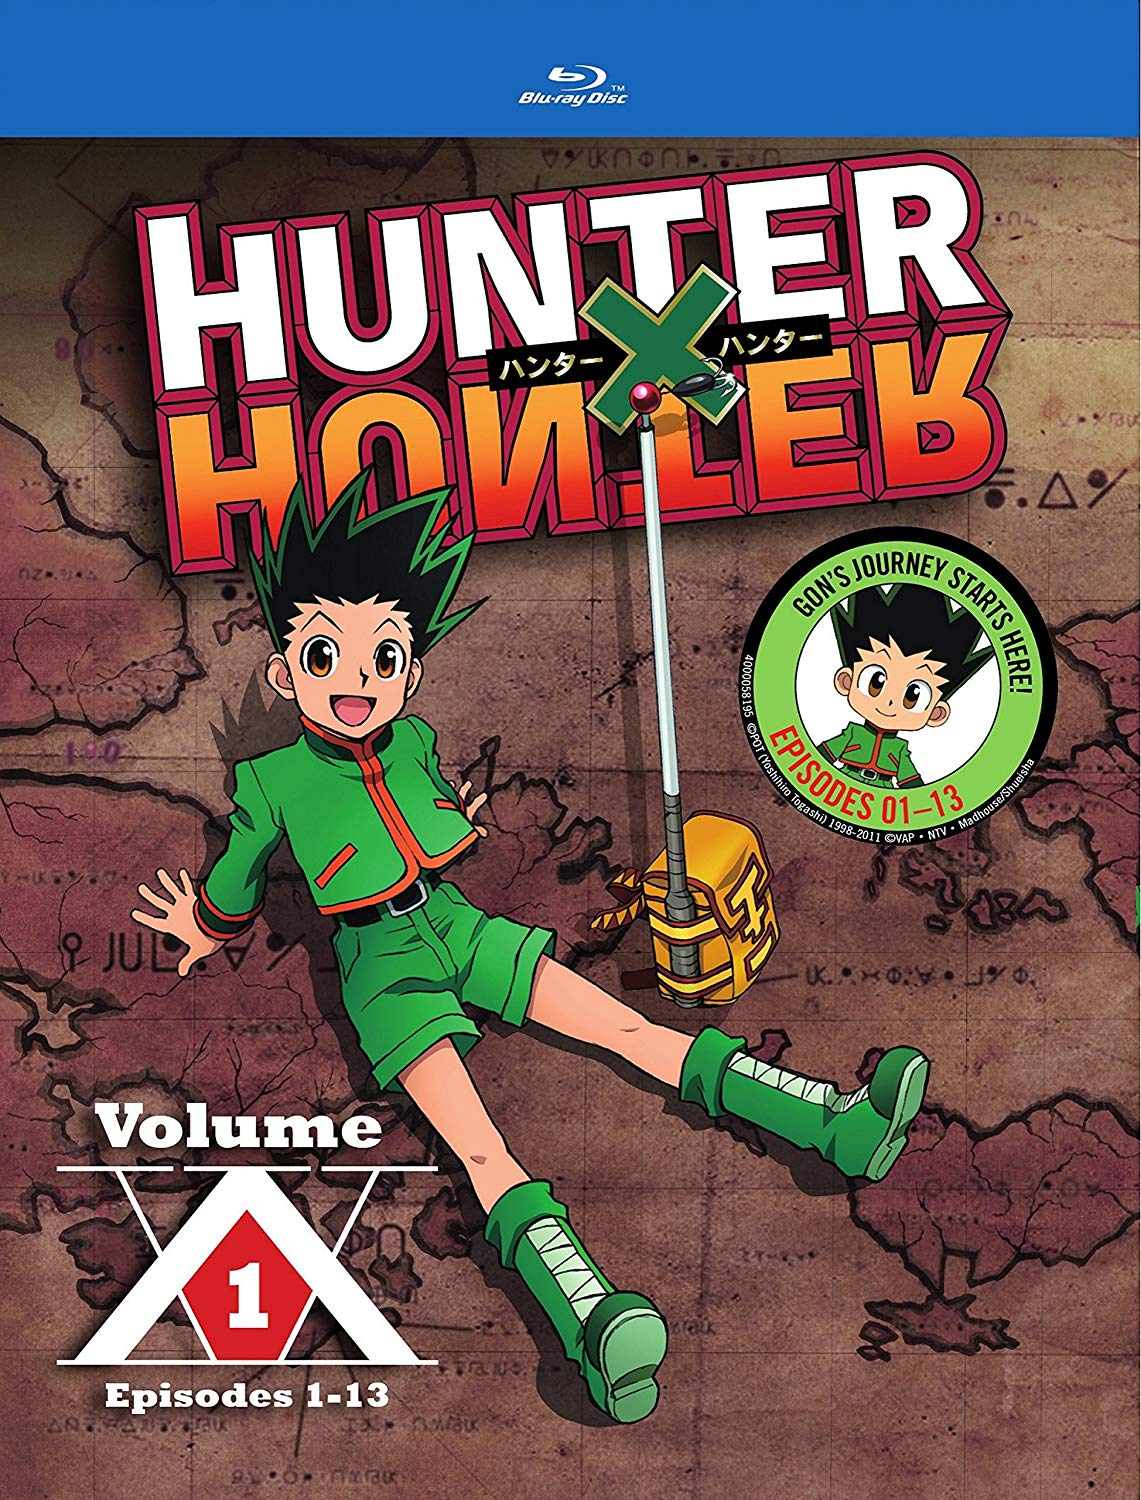 Anime cover: Hunter x Hunter